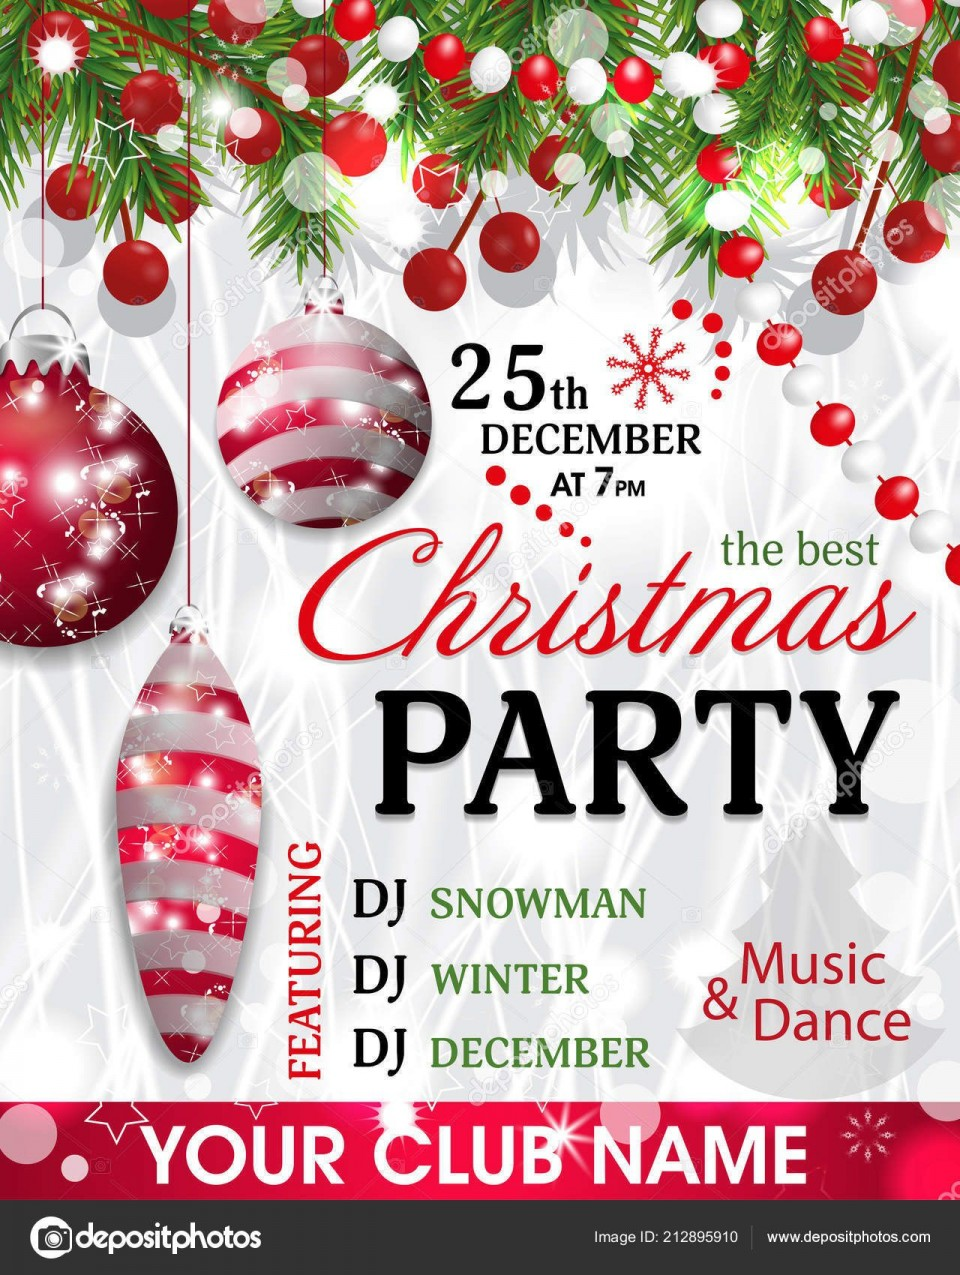 005 Unbelievable Christma Party Invitation Template Design  Funny Free Download Word Card960